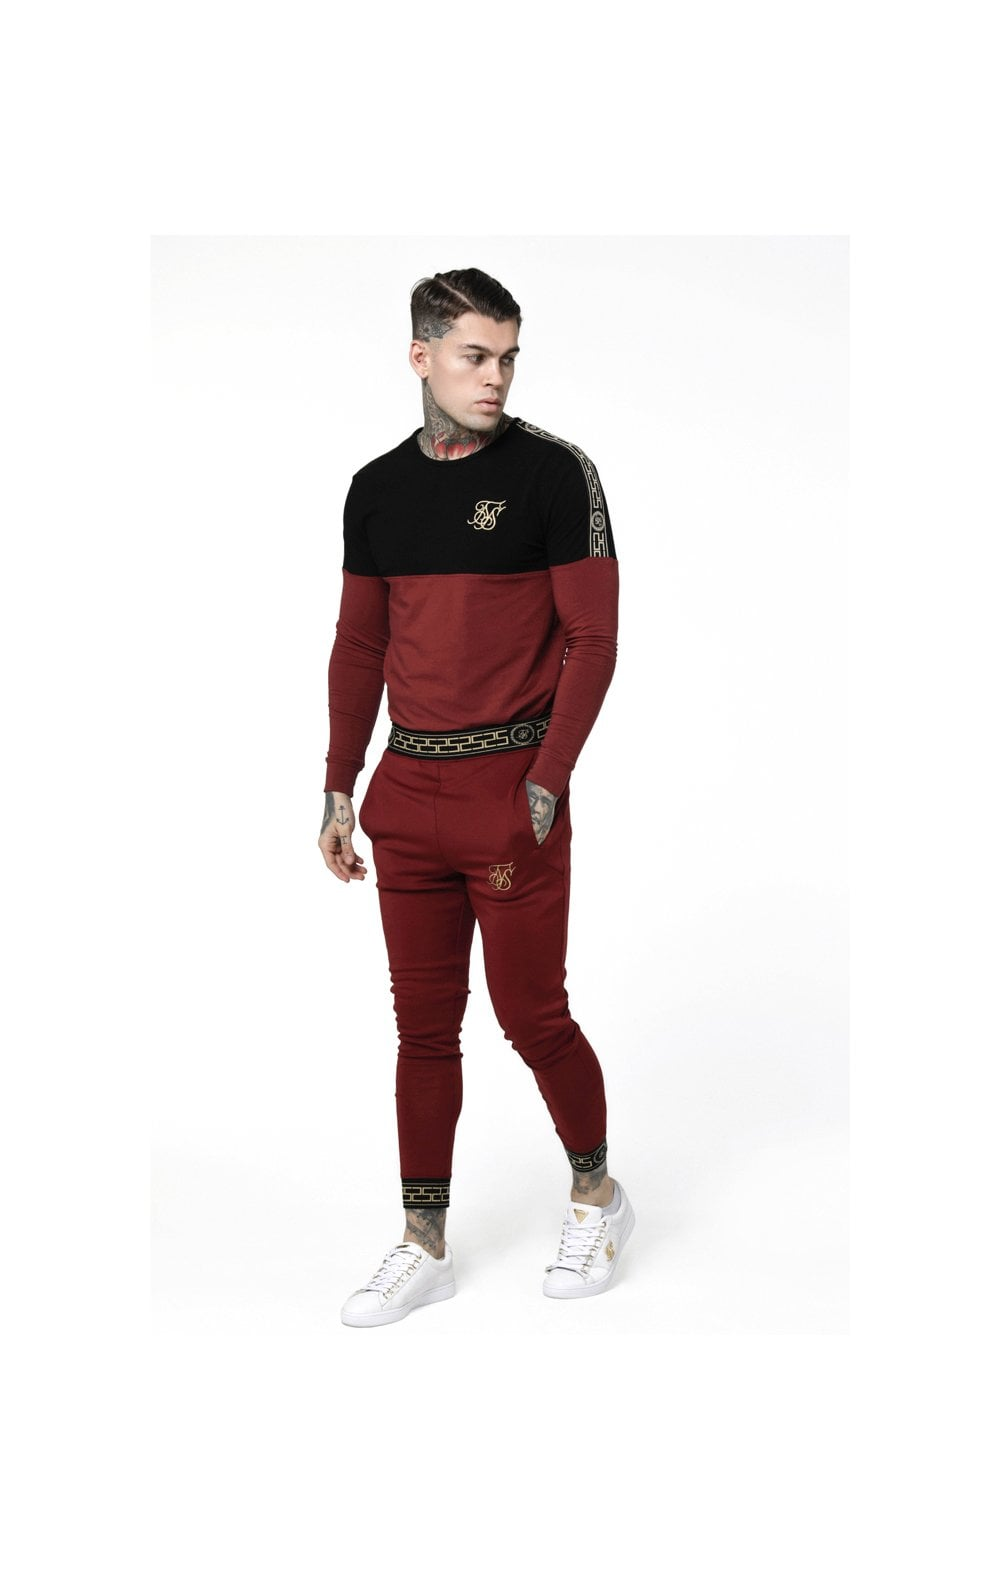 Load image into Gallery viewer, SikSilk L/S Cartel Cut & Sew Half Tape Gym Tee - Black & Red (4)